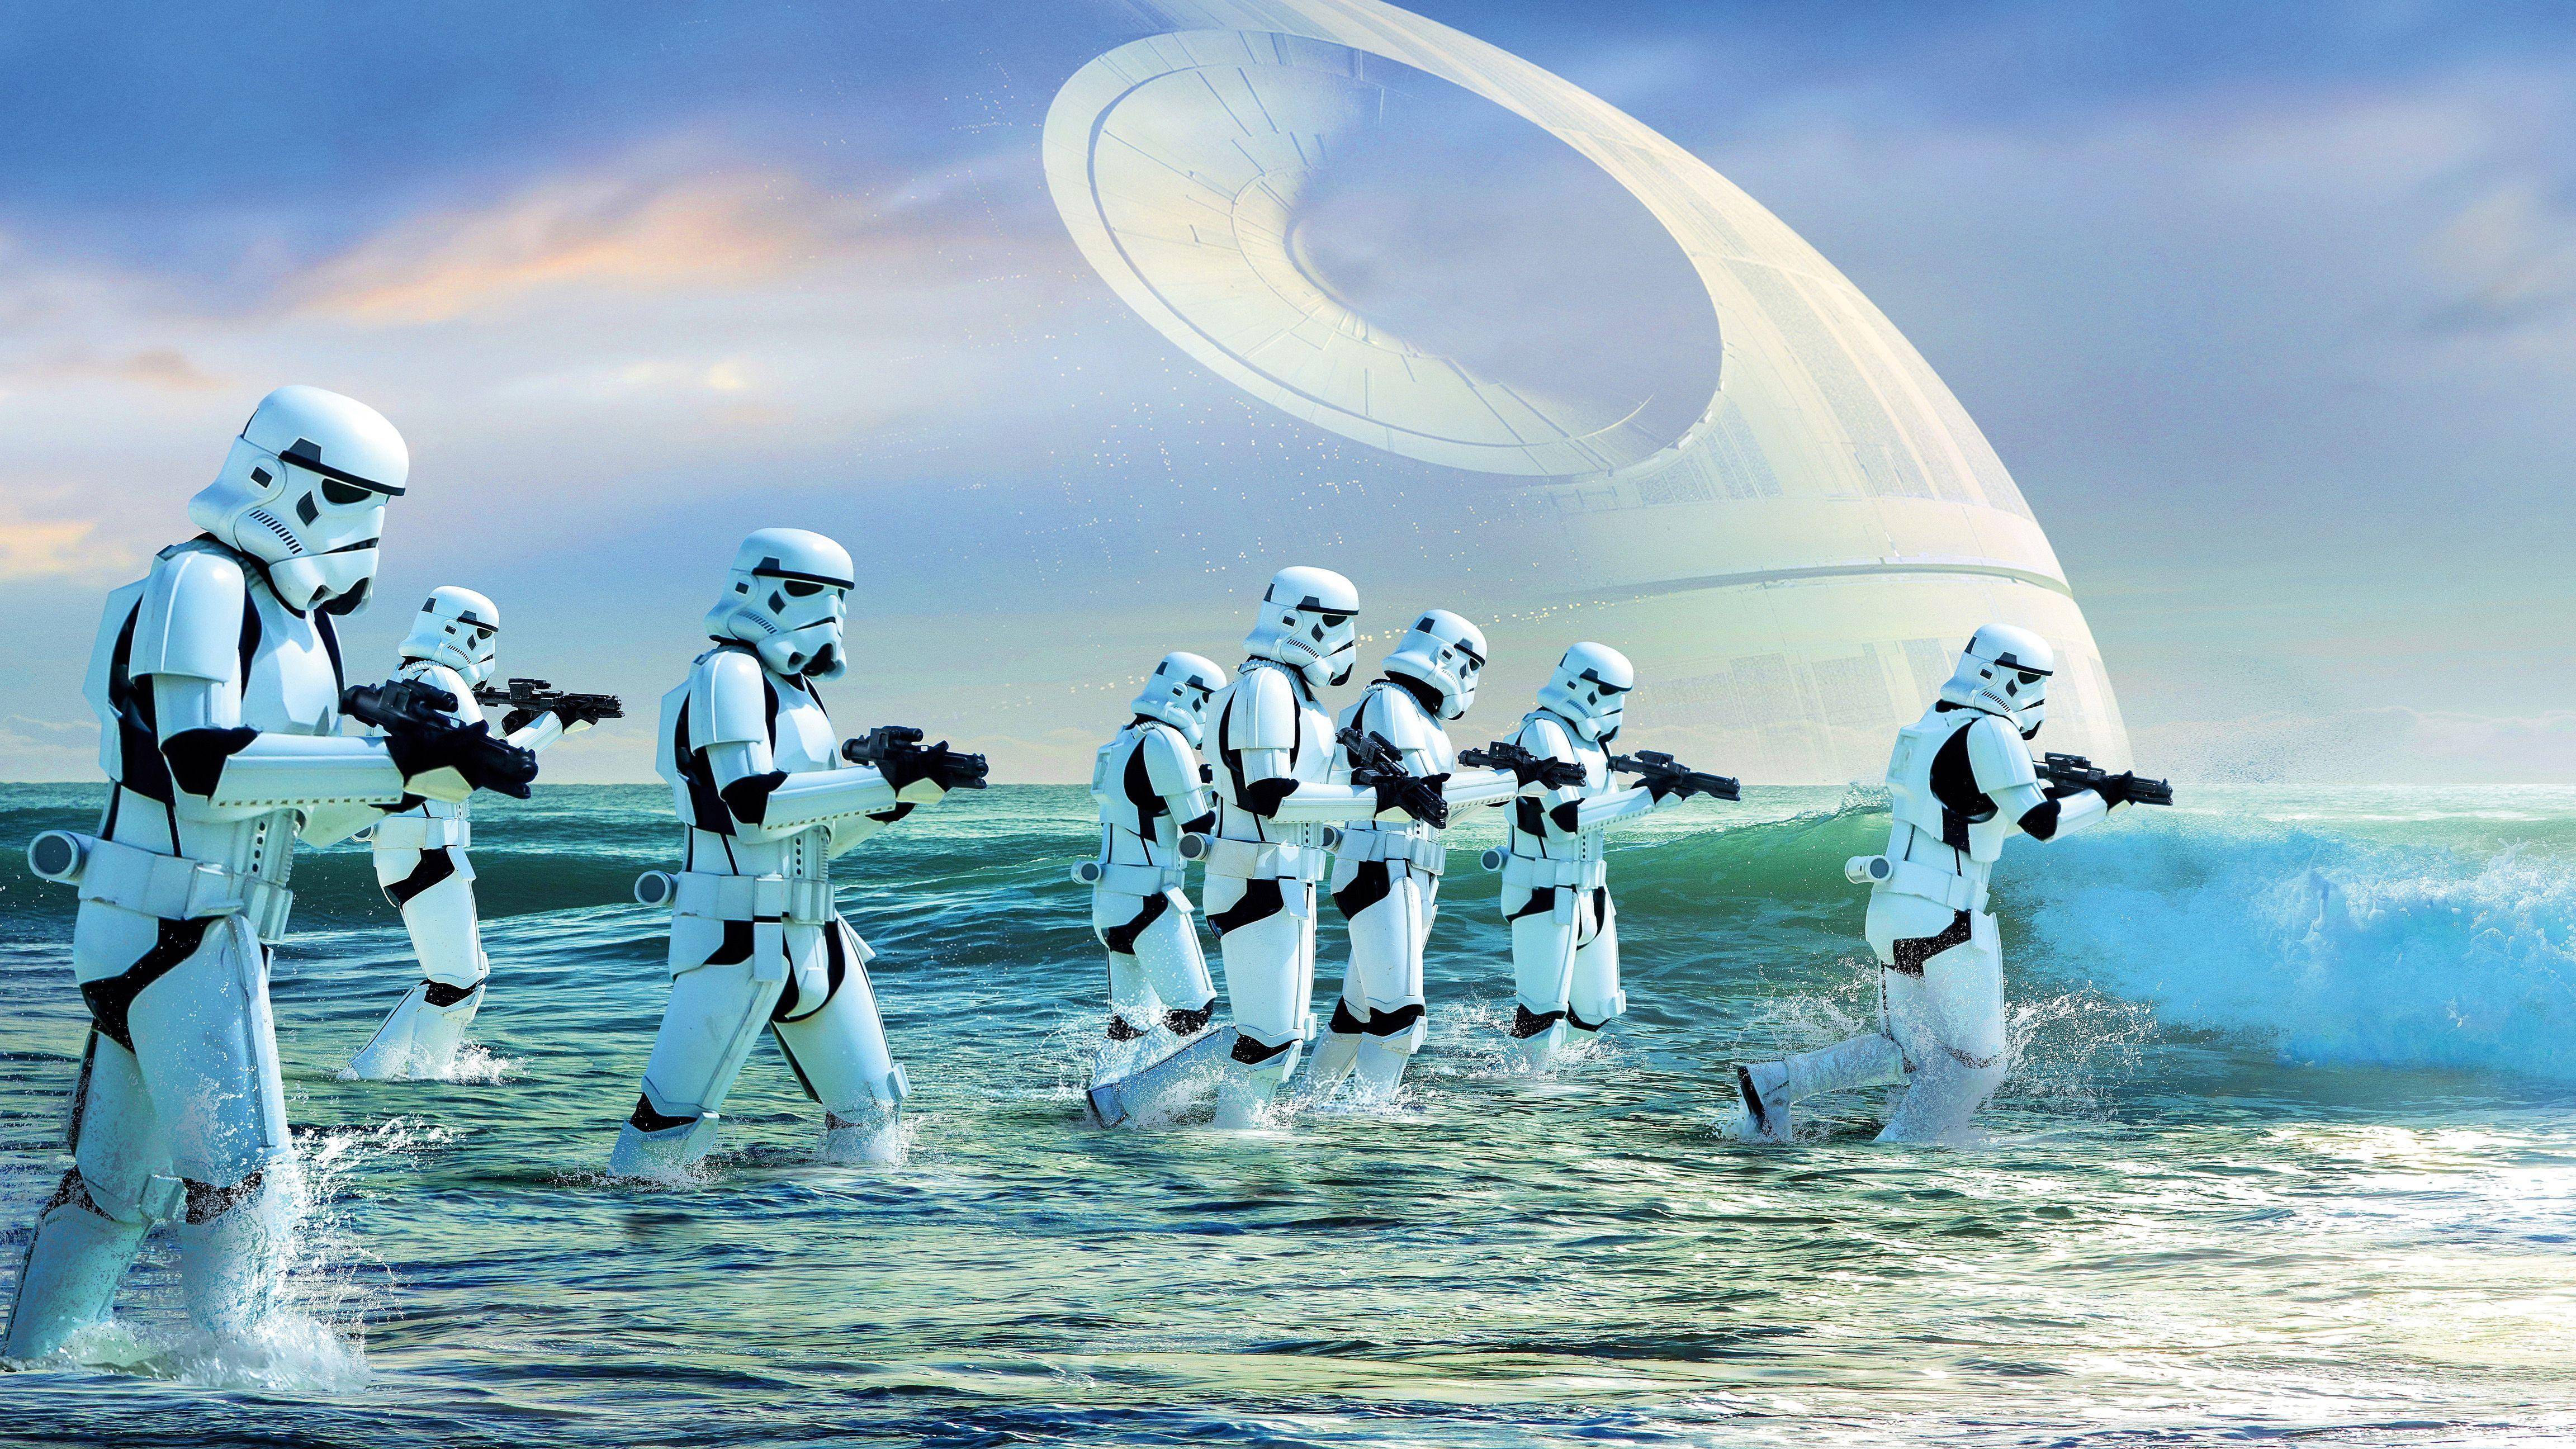 Wallpapers Stormtroopers, Rogue One: A Star Wars Story, 4K, Movies,